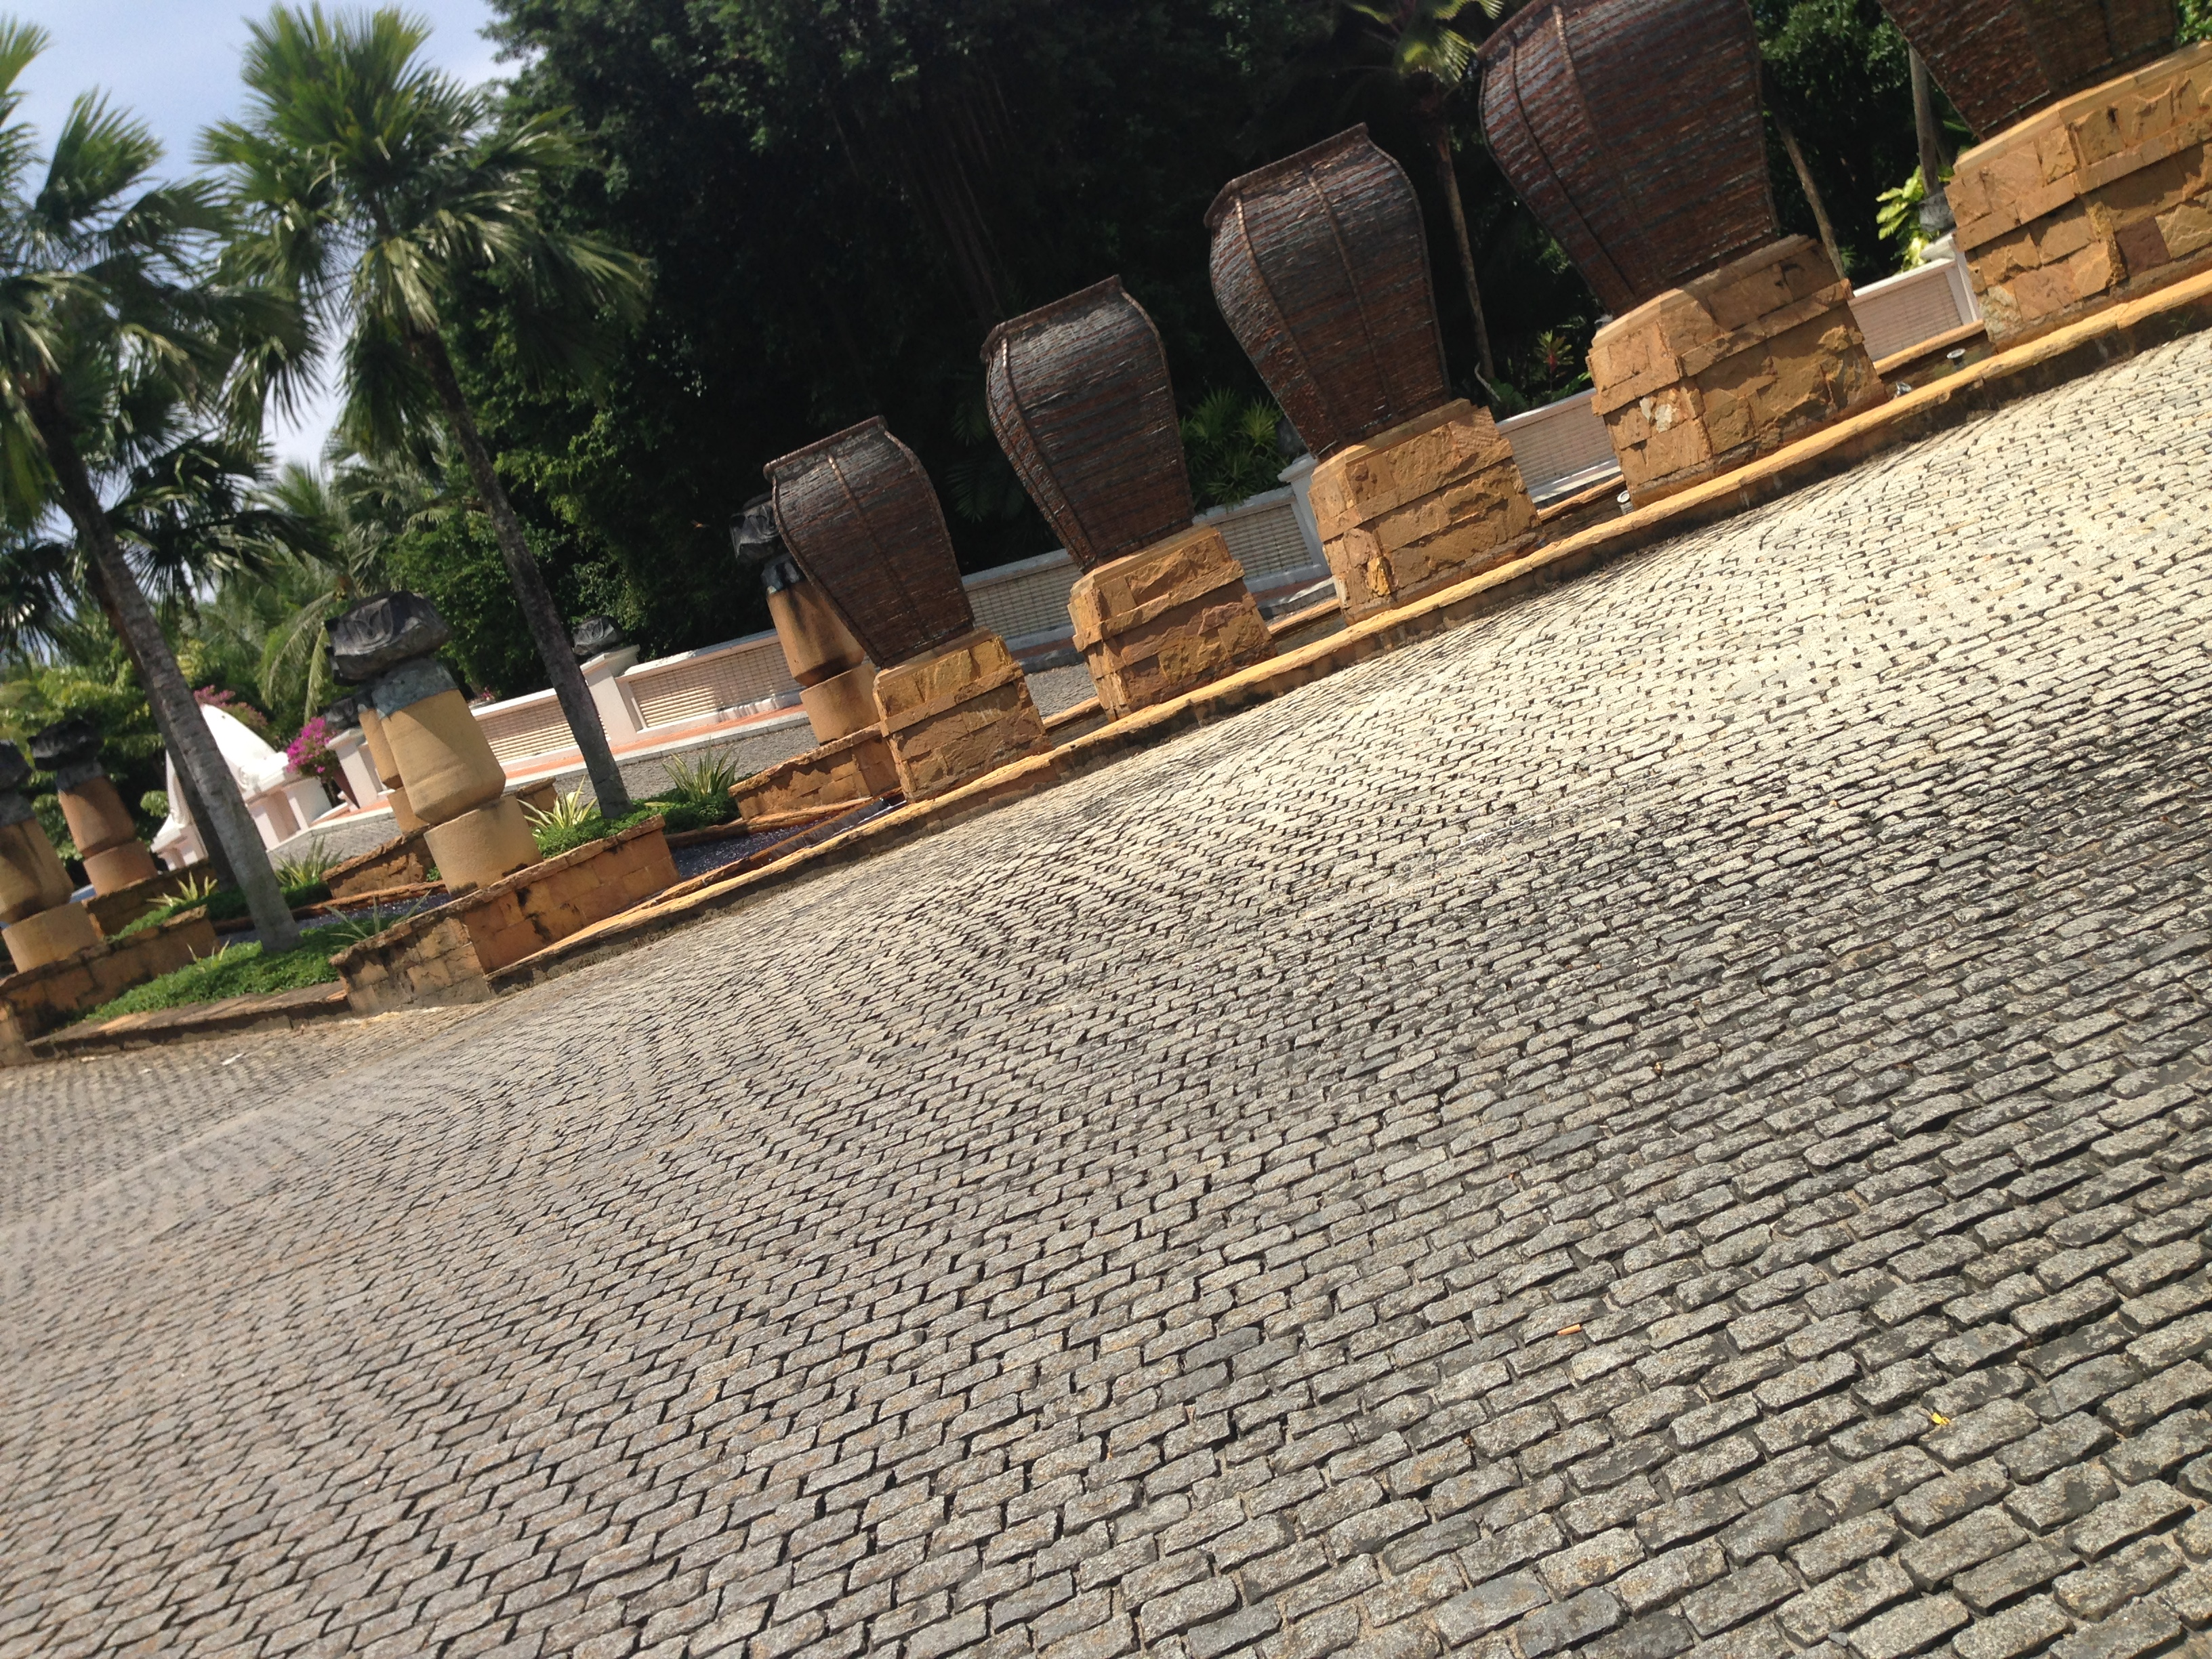 Photo of the drive way leading up to the JW Marriott reception. The drive-way is cobbled. You can see a clump of palms in the distance, and on your right you can see stone coloured urns, which are lit up at night.